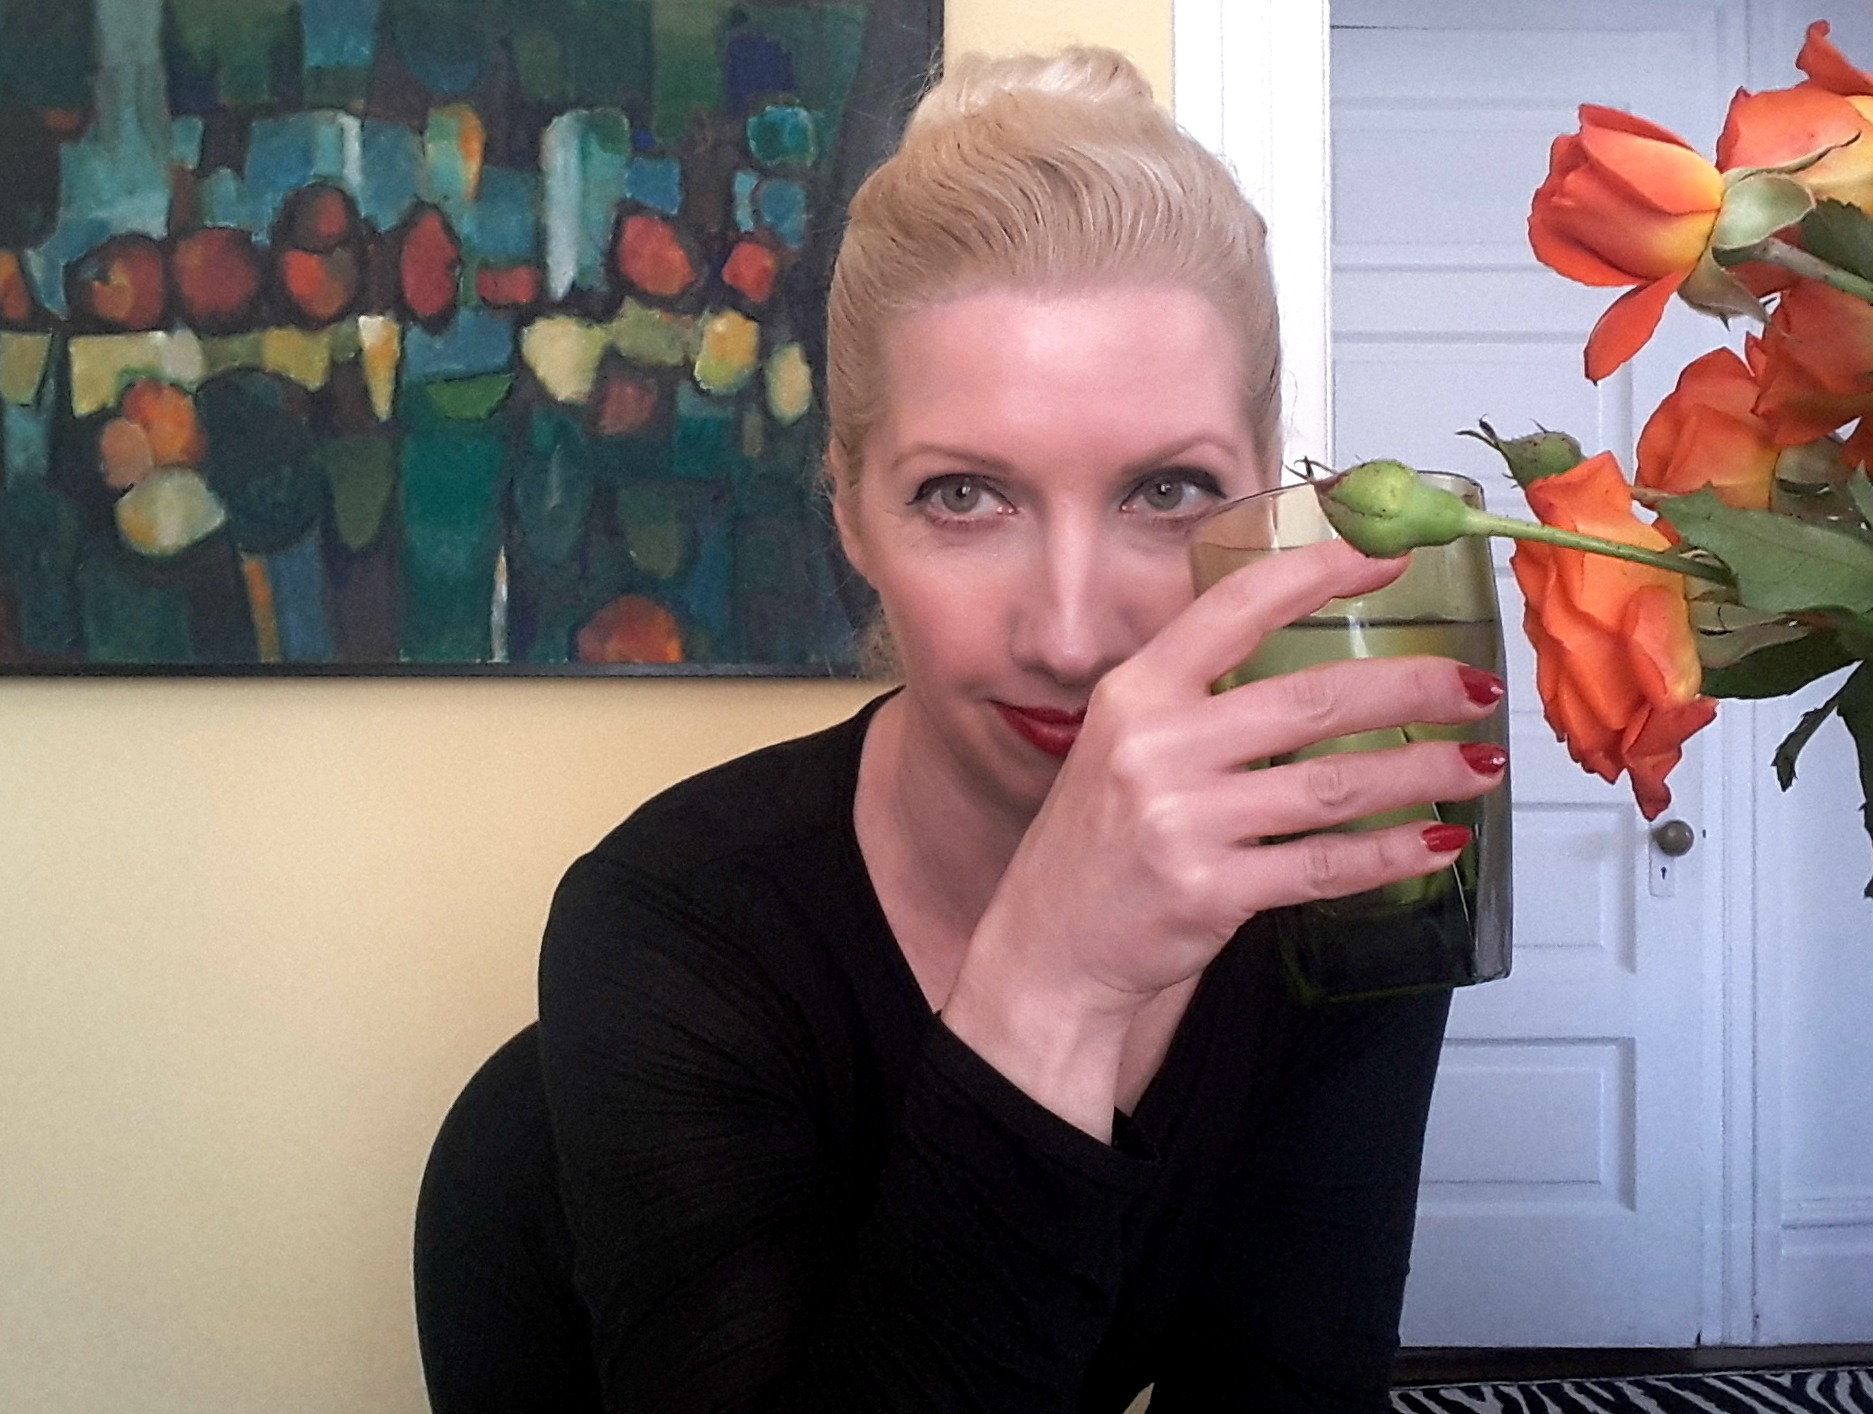 Marci+Bowman-drinking-with-roses.jpg